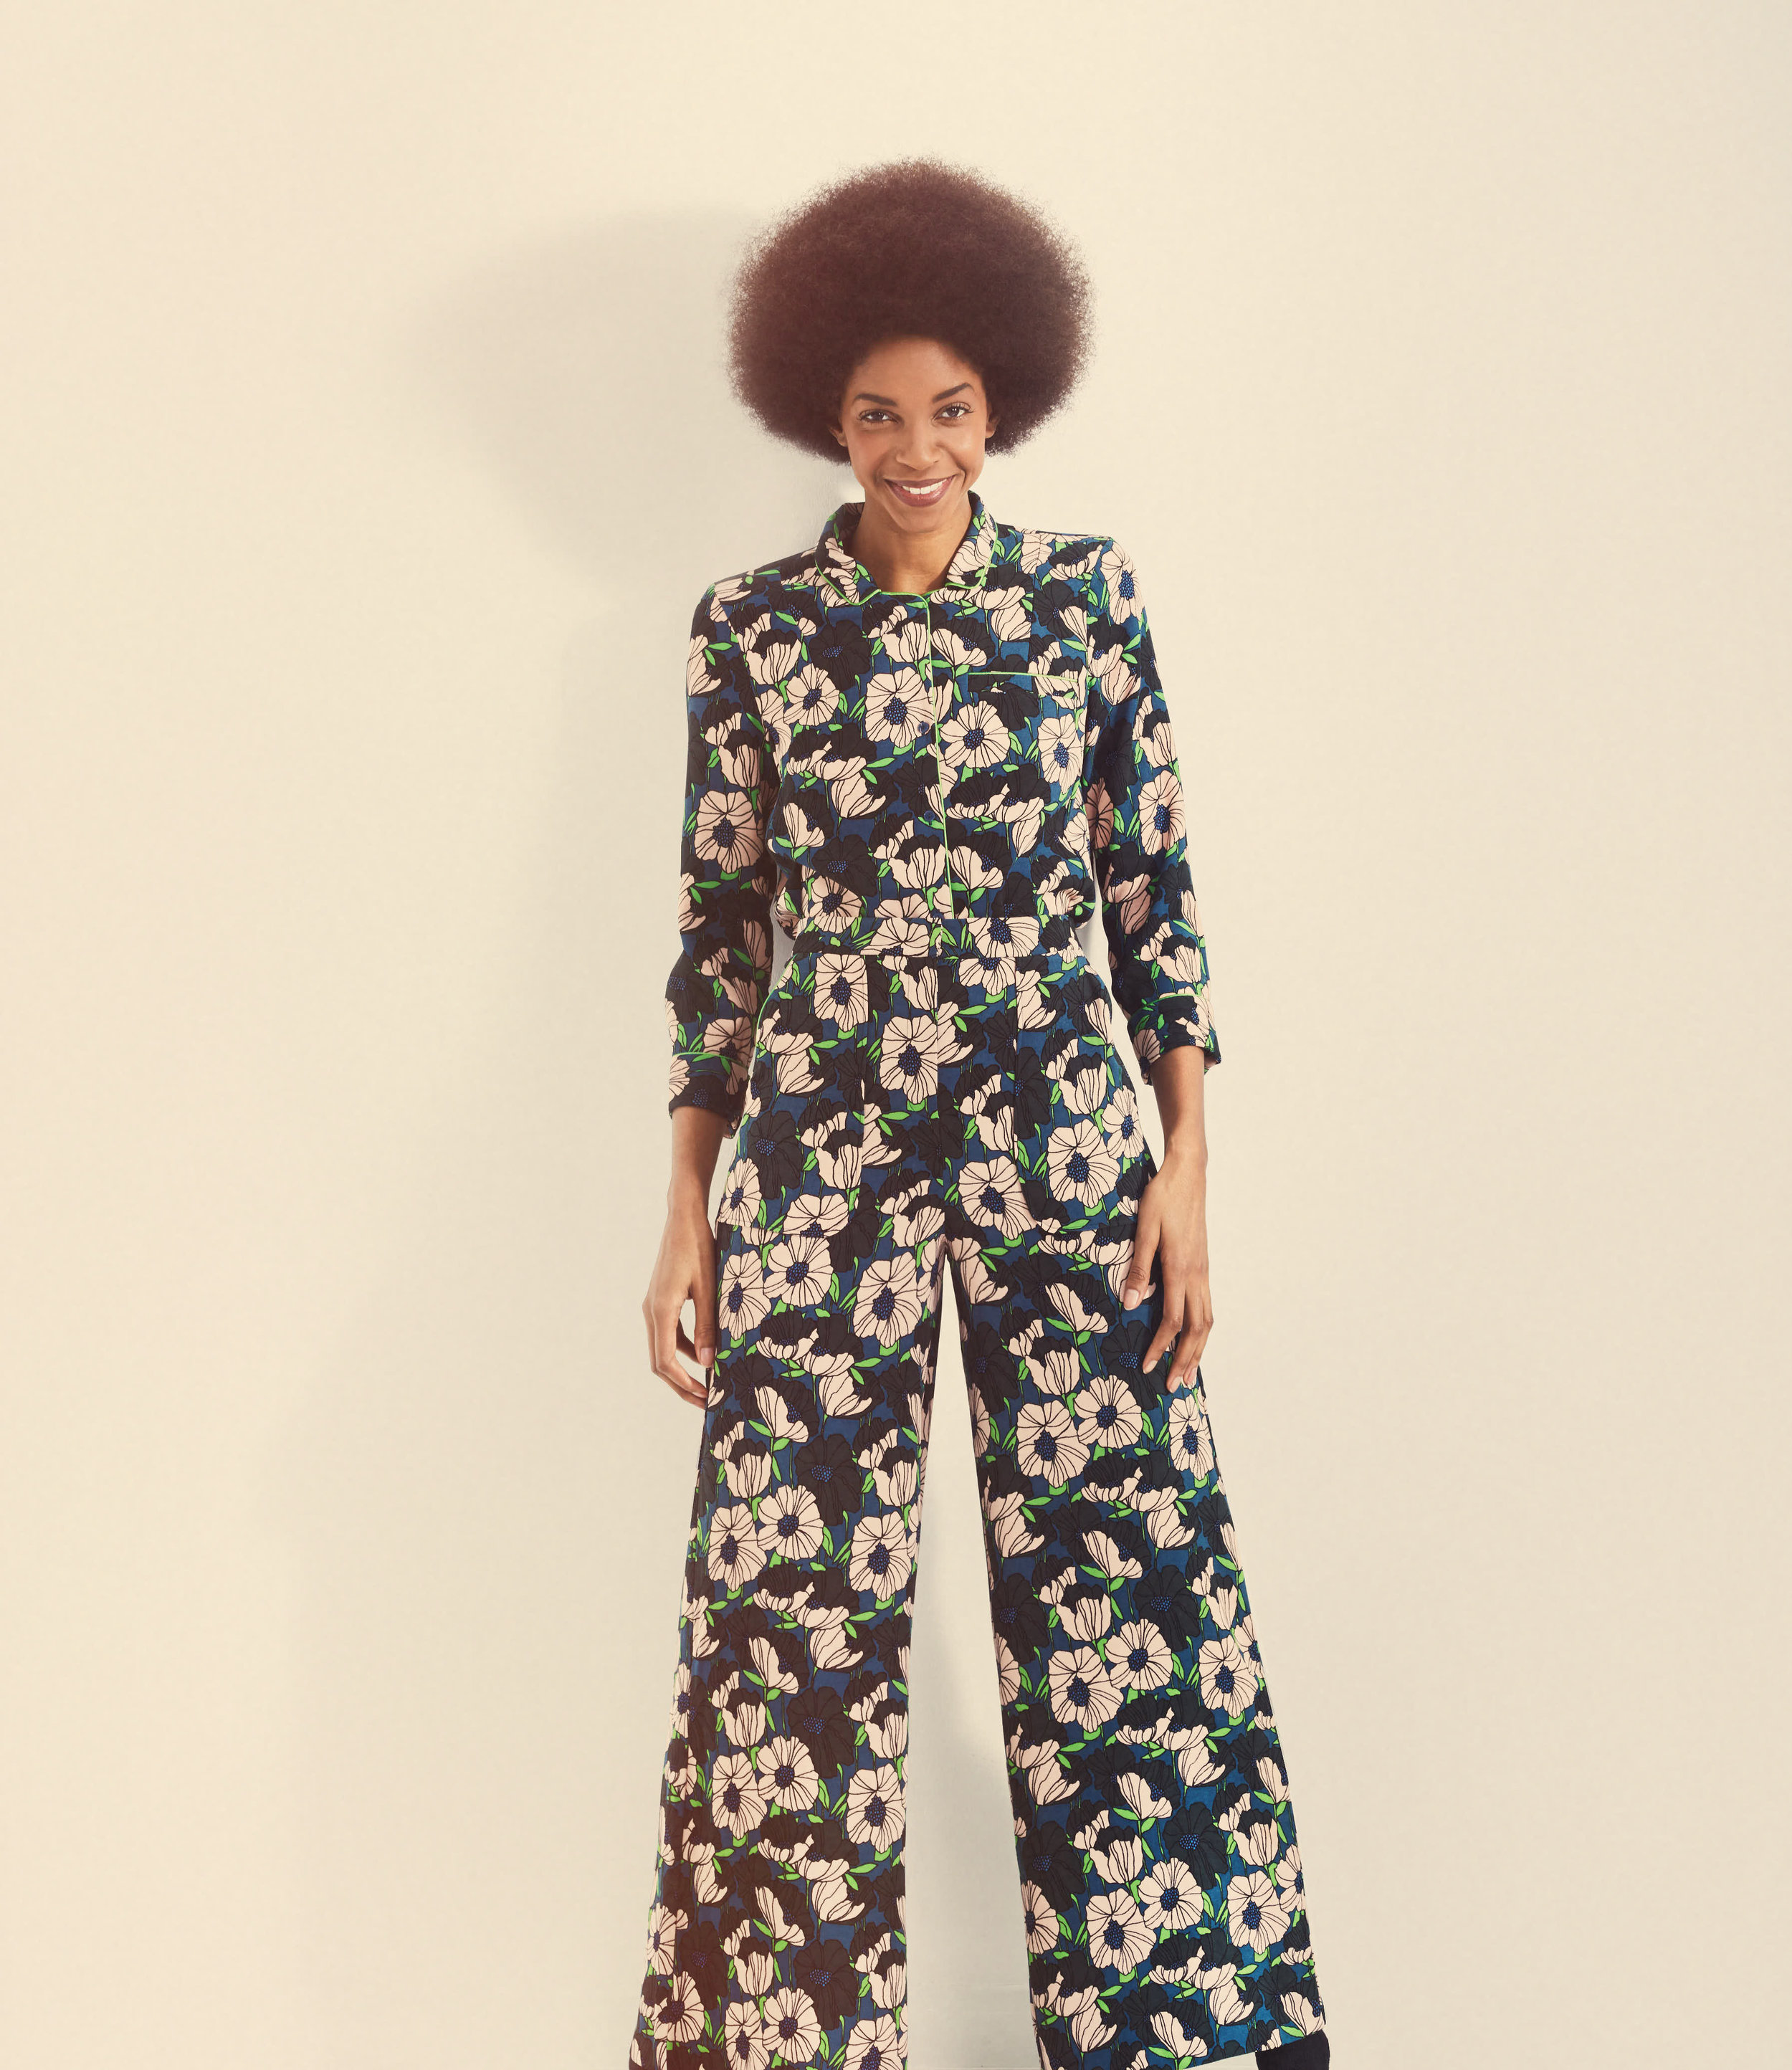 Retro-Afro-Girl-Smiling-Northern-Soul